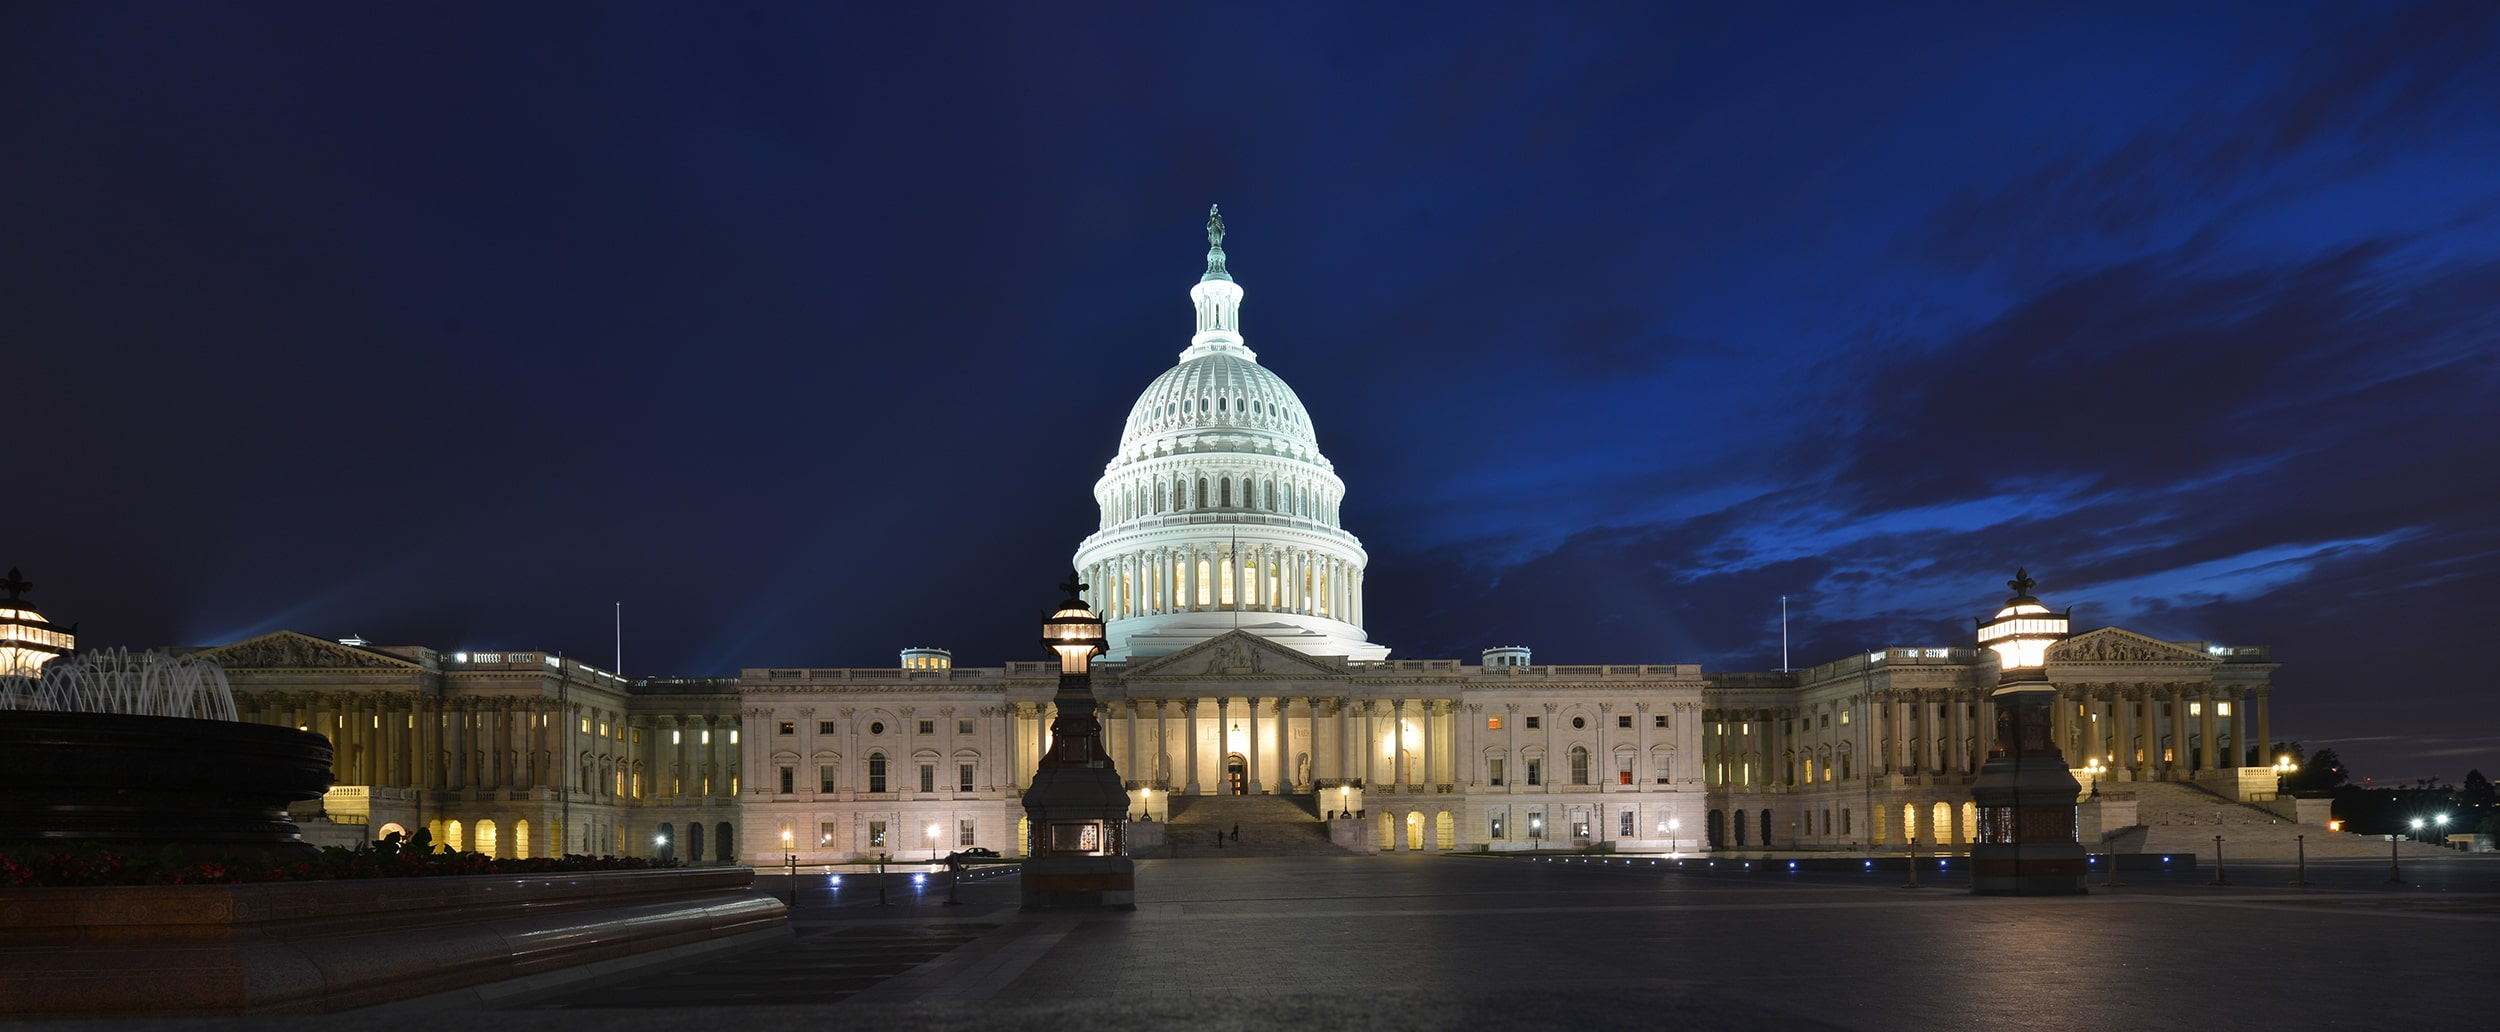 capitol-at-night-for-advocacy-min